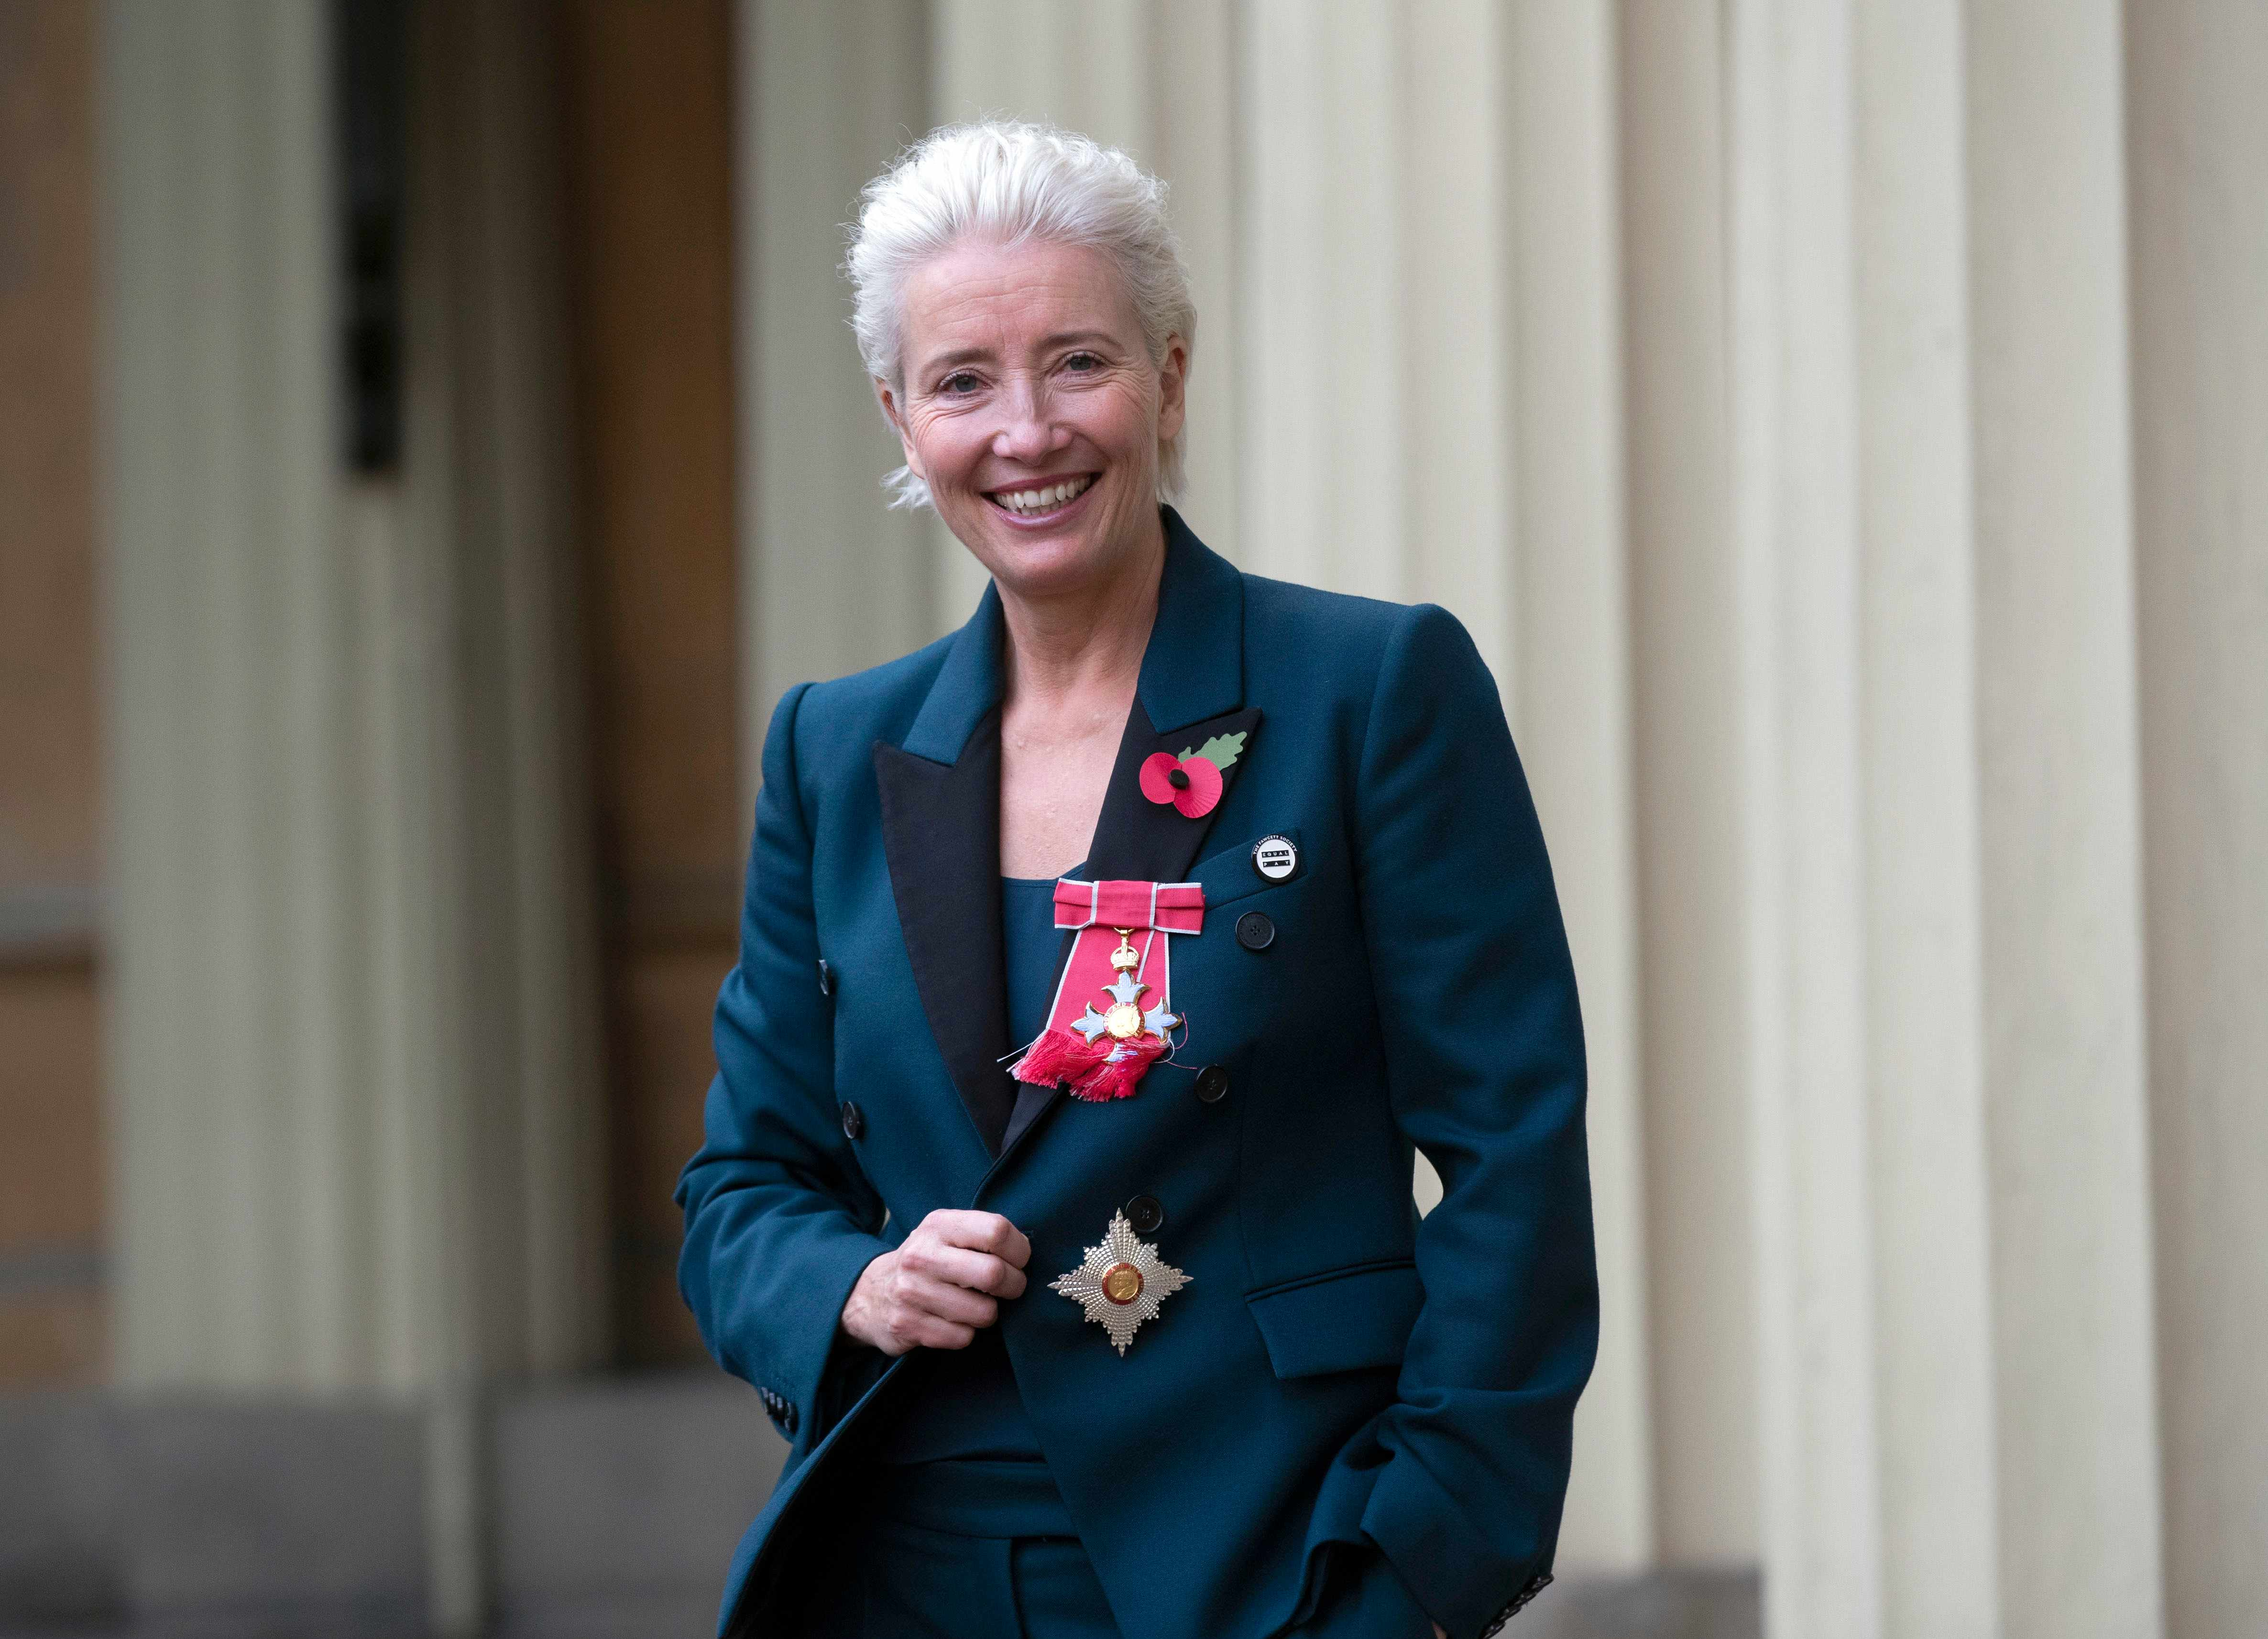 LONDON, ENGLAND - NOVEMBER 7:  Actress Emma Thompson leaves Buckingham Palace after receiving her damehood at an Investiture ceremony on November 7, 2018 in London, England. Ms Thompson, 59, received the accolade in recognition of her services to drama. (Photo by Steve Parsons - WPA Pool/Getty Images) TL